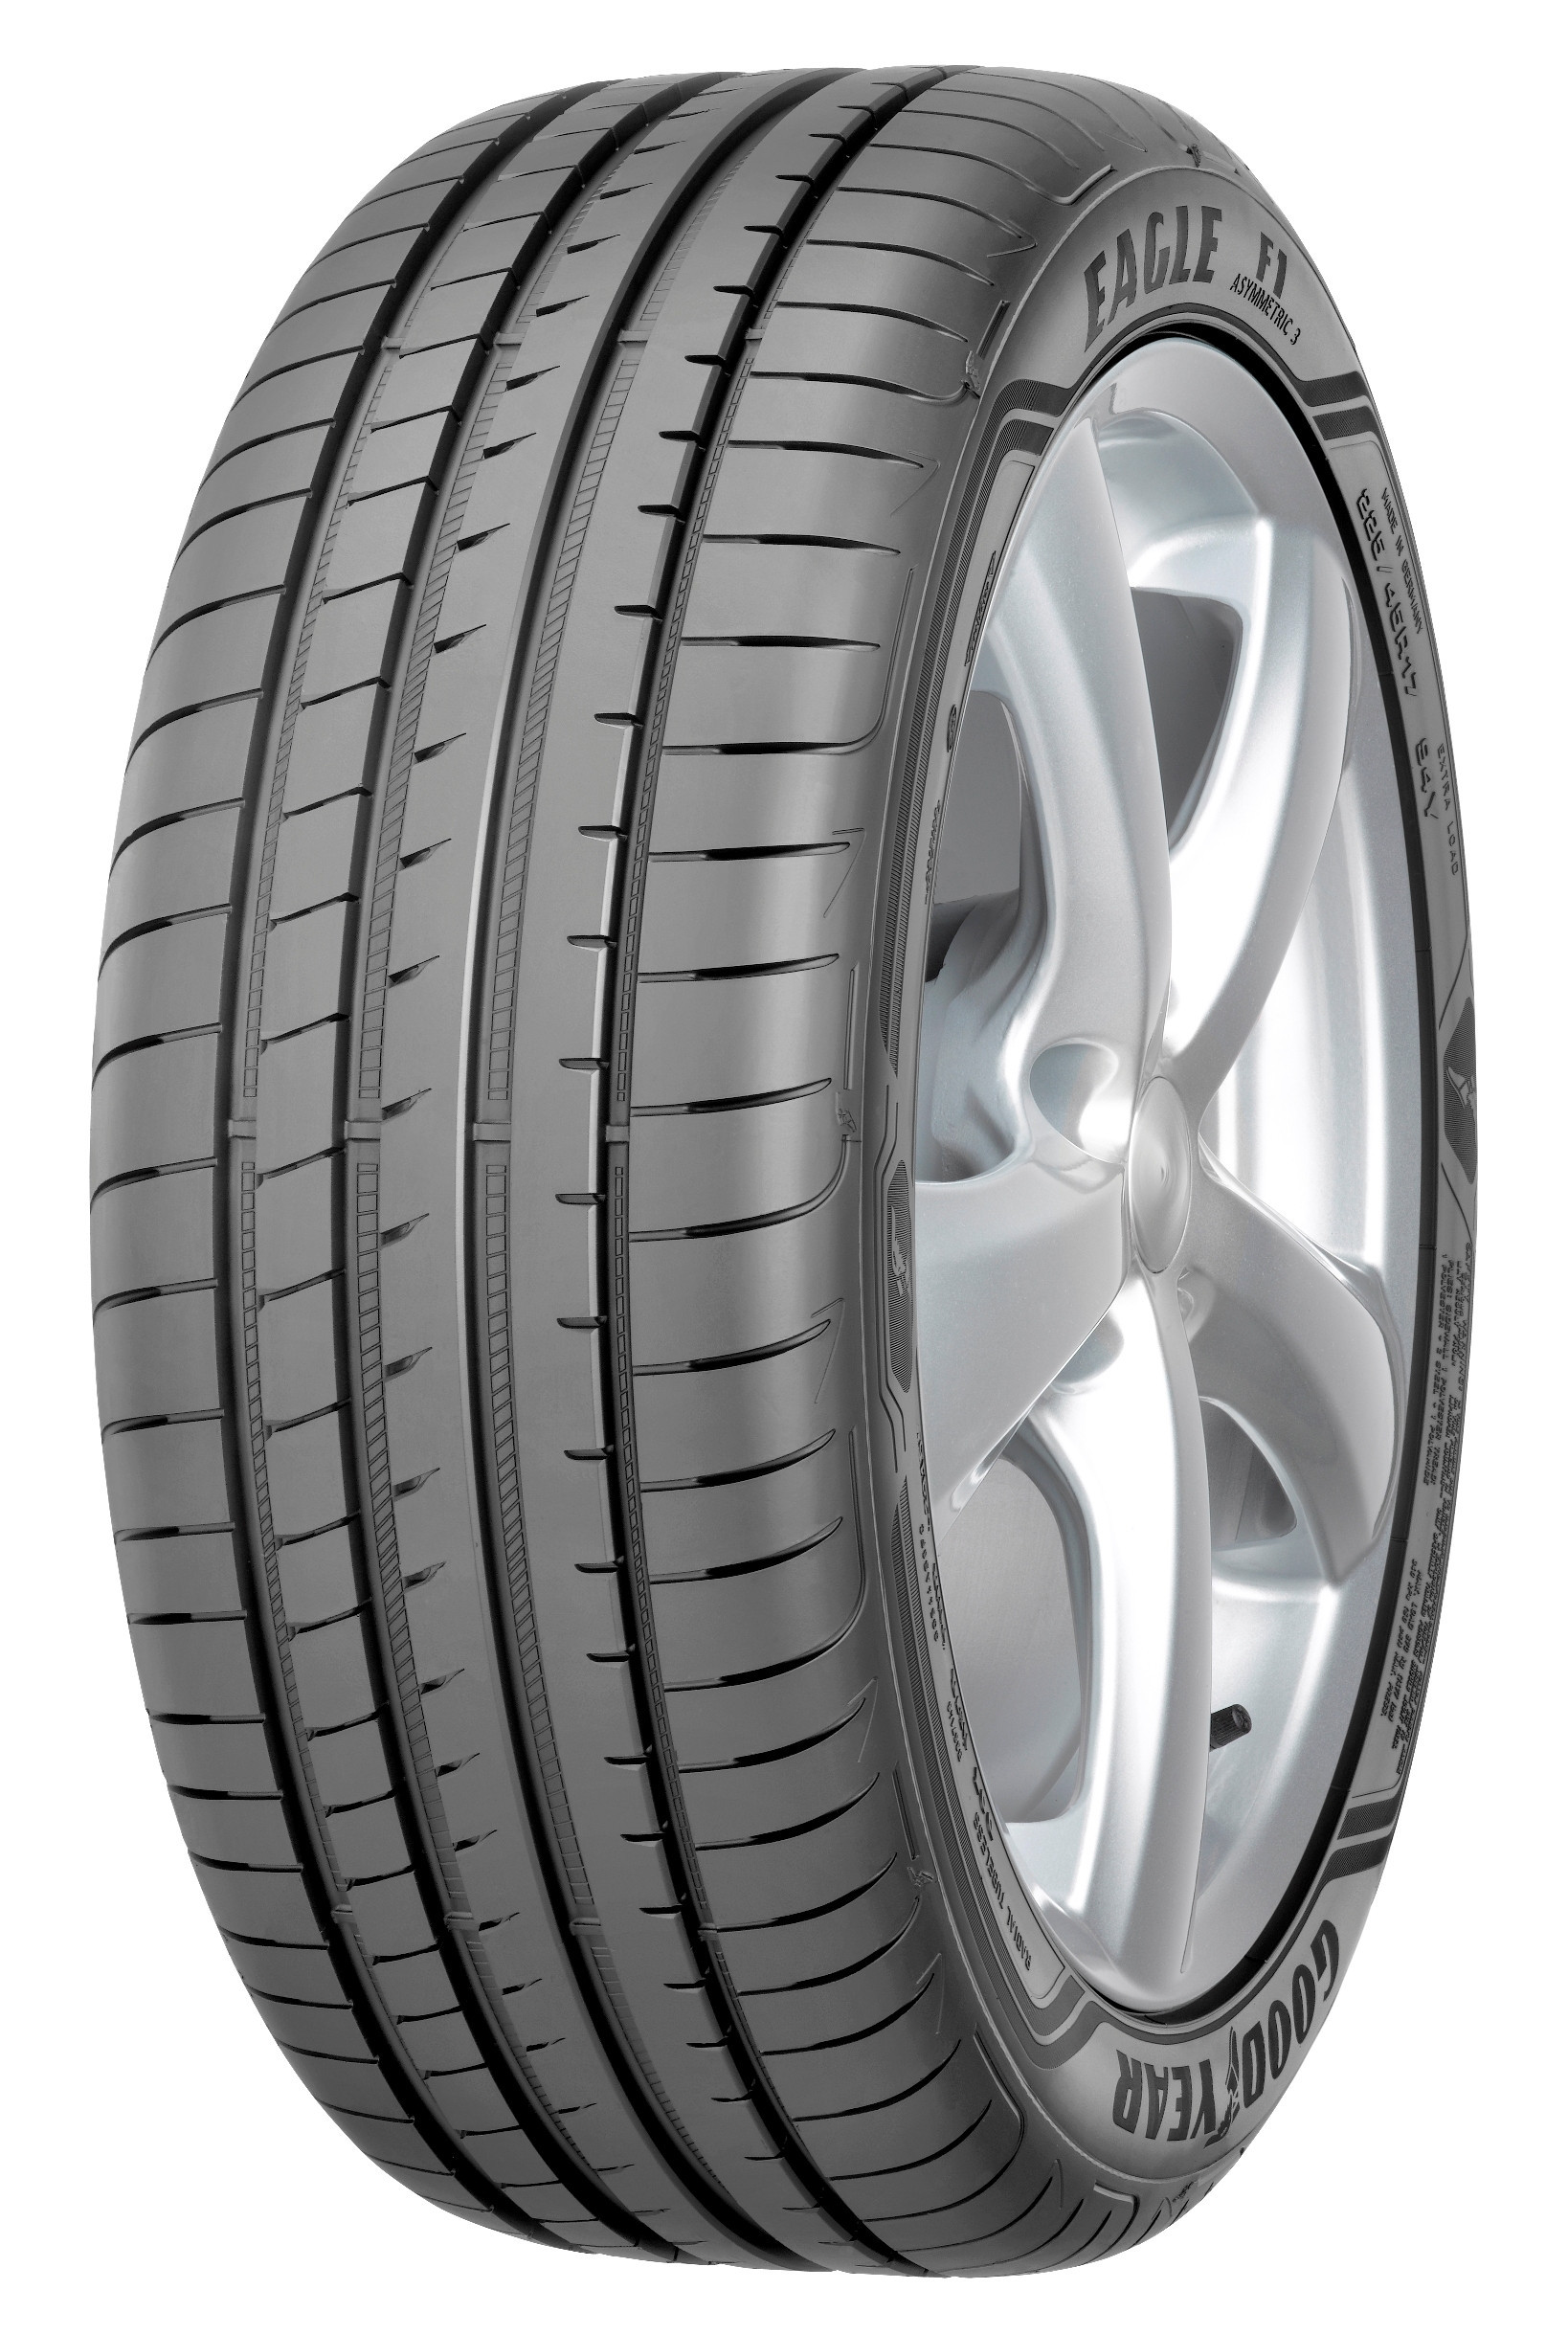 Anvelopa Vara 225/45R17 91Y Goodyear Eagle F1 Asymmetric 3